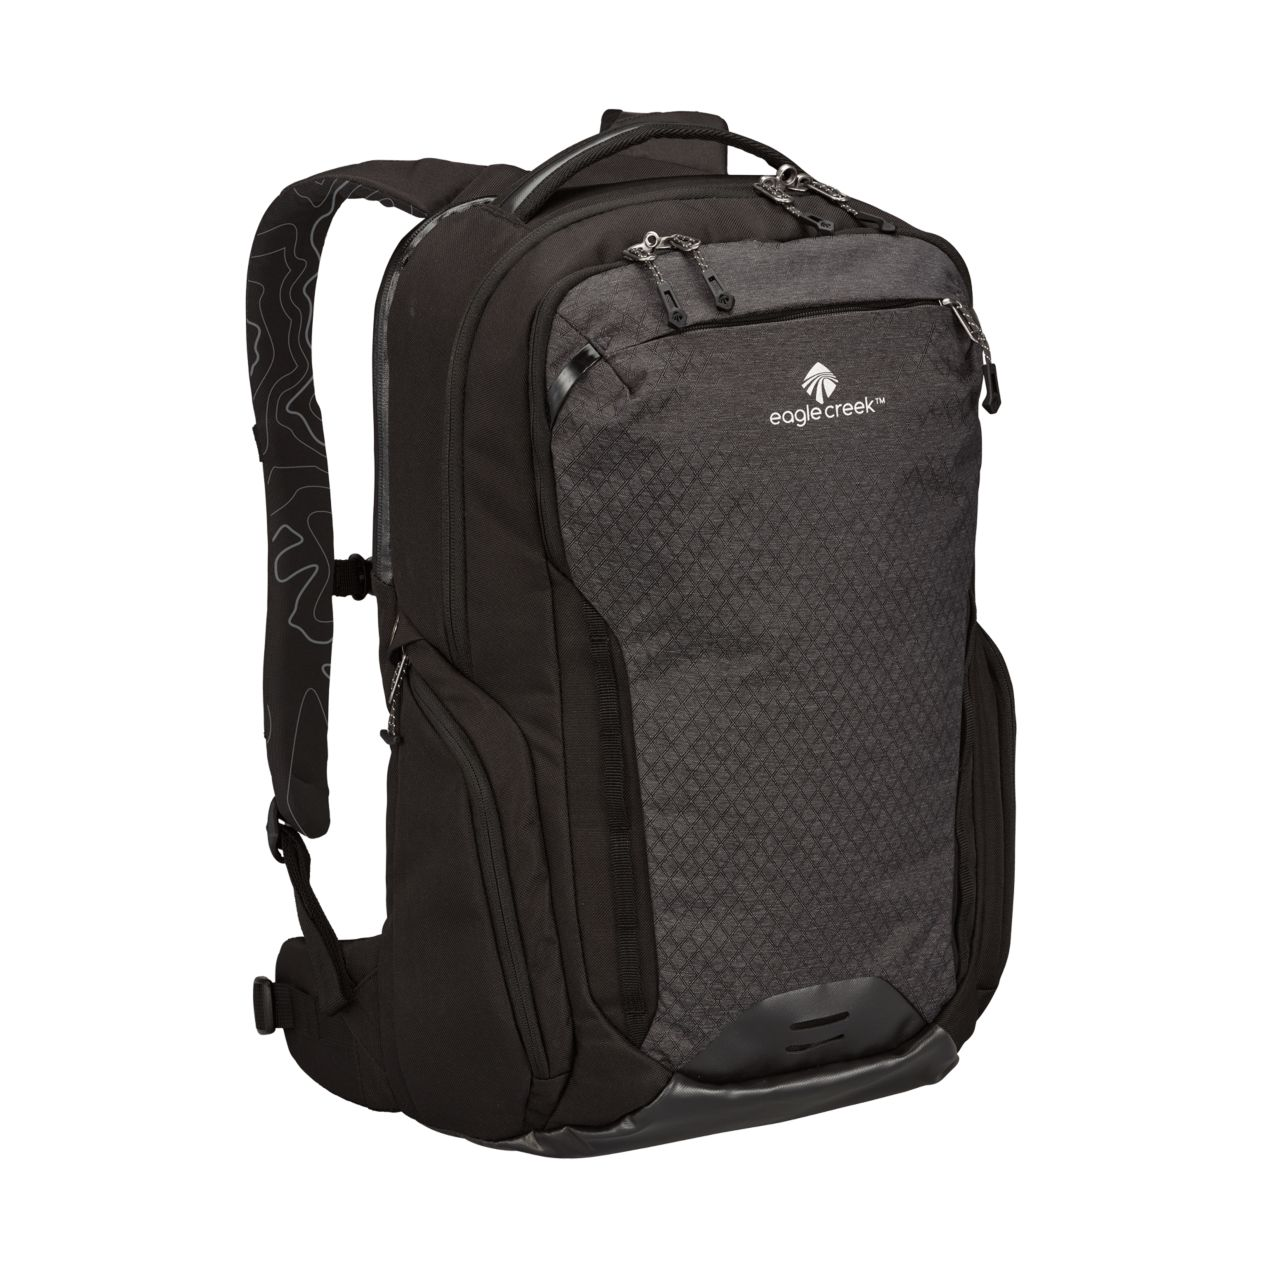 9f817001fd1f Eagle Creek Backpacks — How to Choose the Right Bag for Your Trip